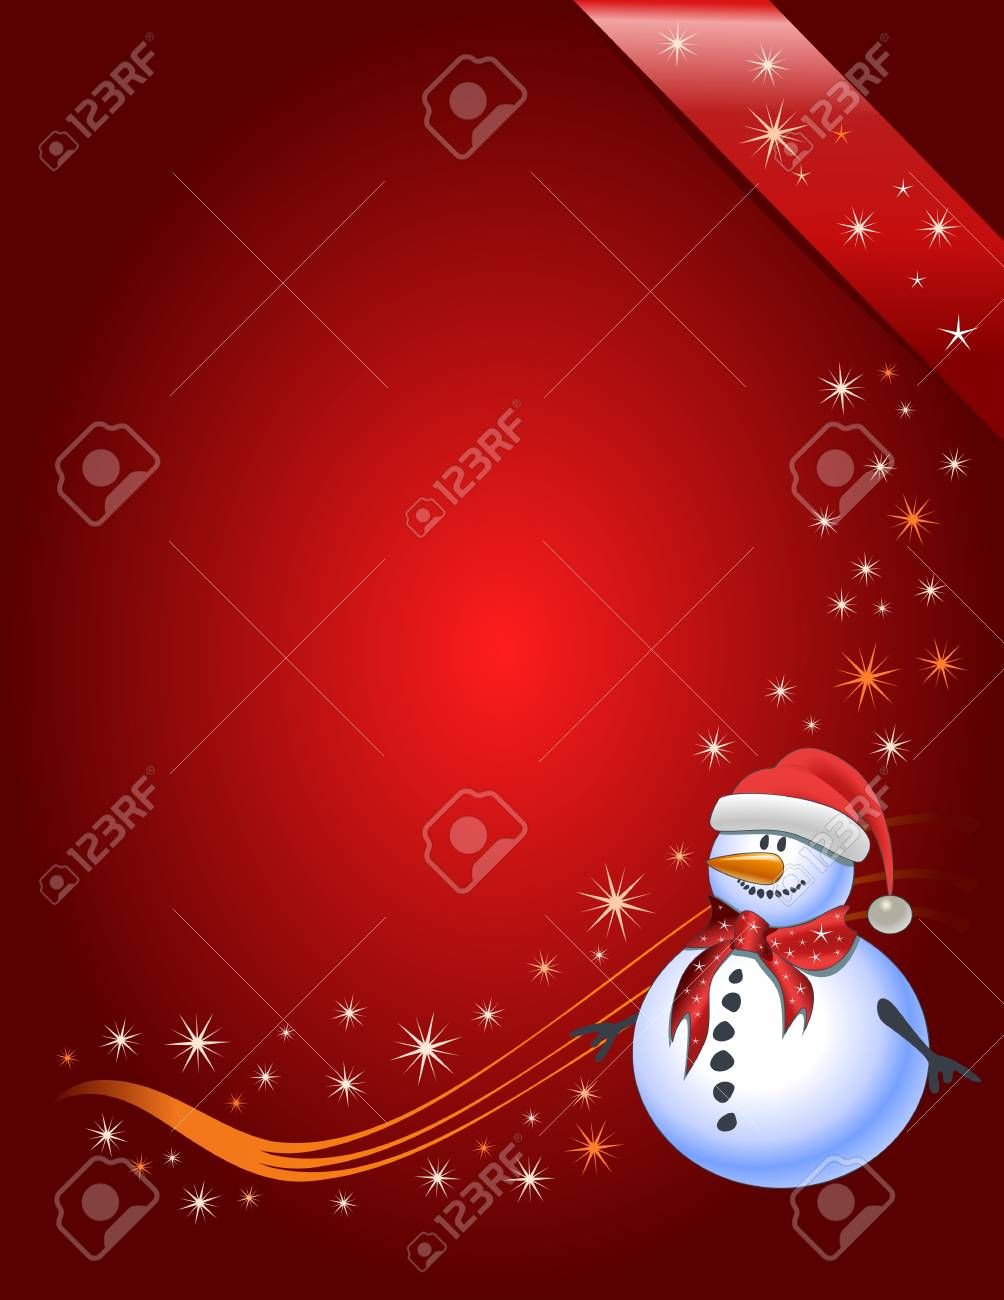 Vector illustration Snowman with Santa Claus hat Stock Vector - 5712282